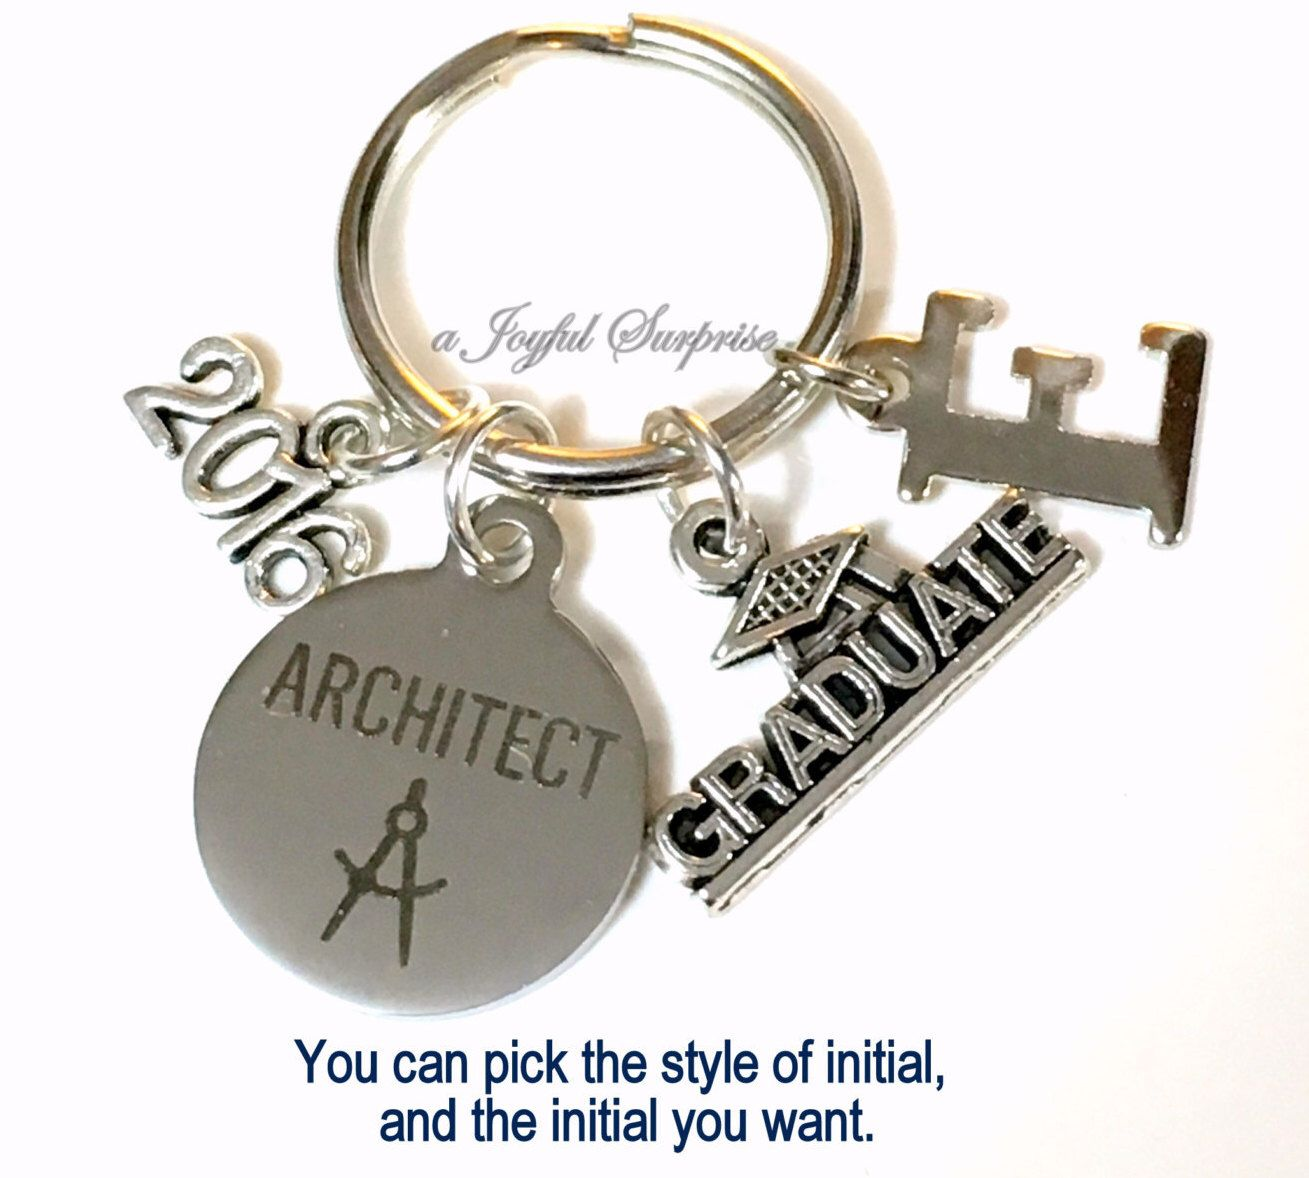 Architect Student architect graduation present, architecture keychain, gift for